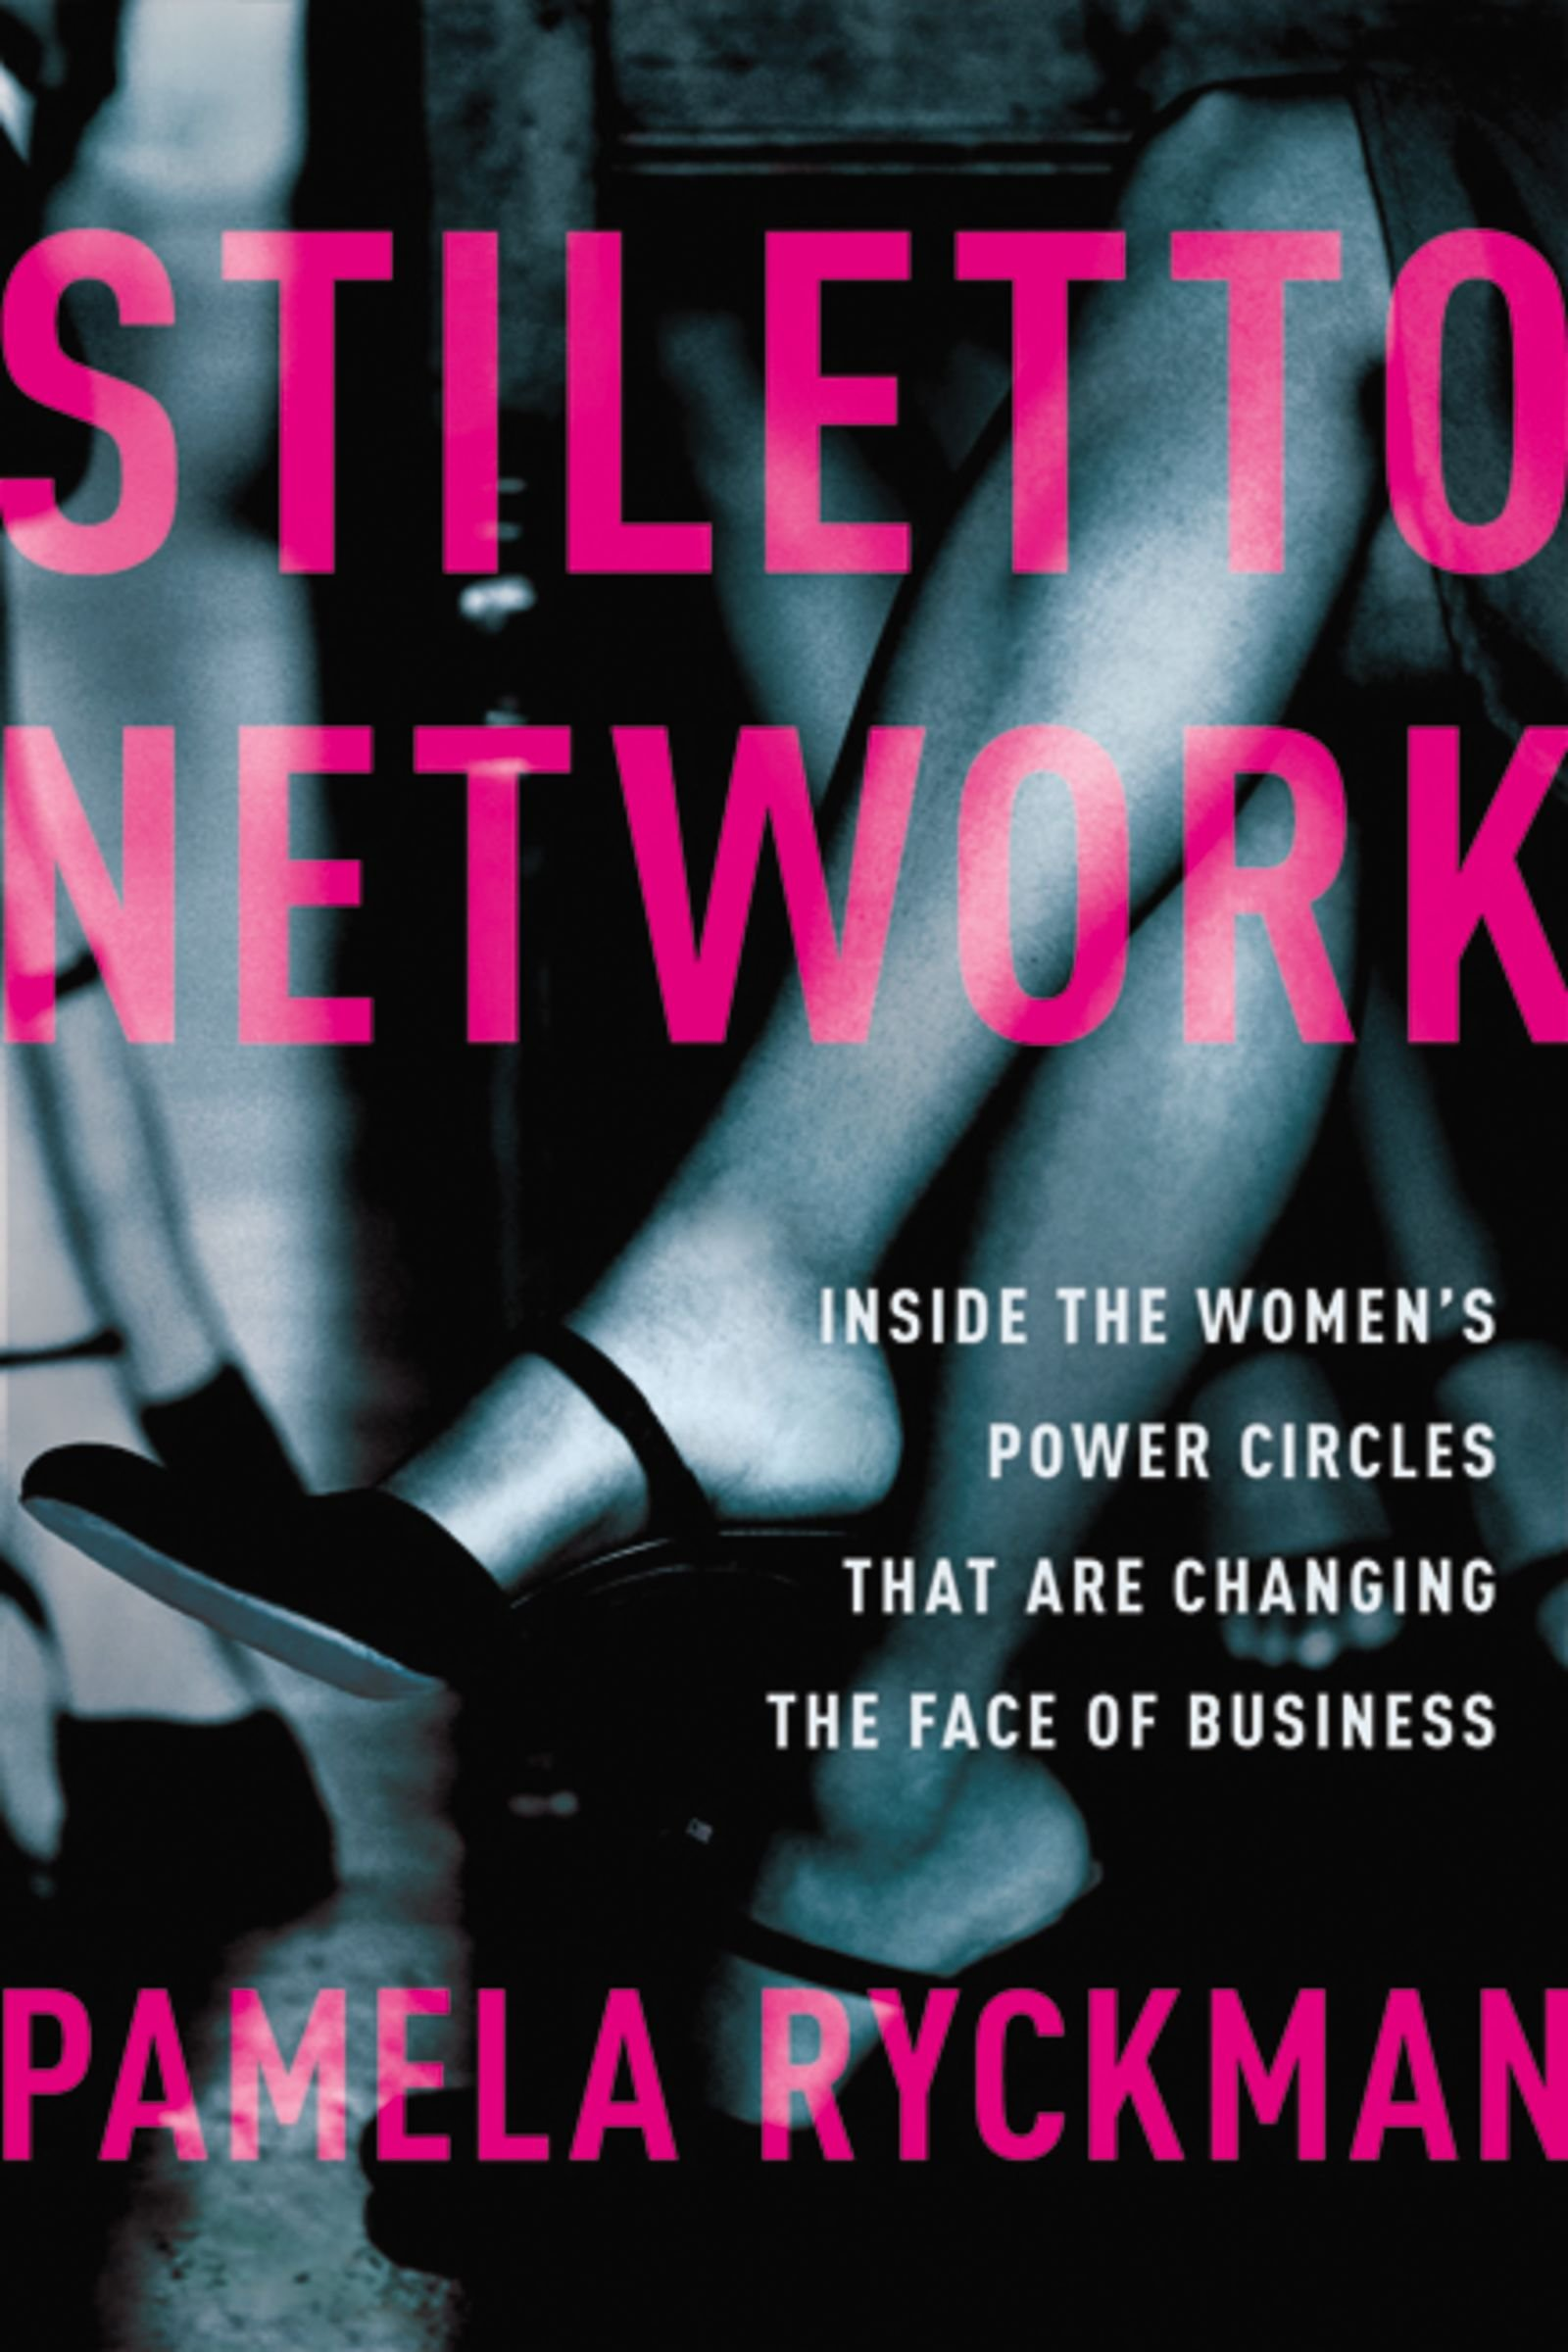 Inside the Stiletto Network